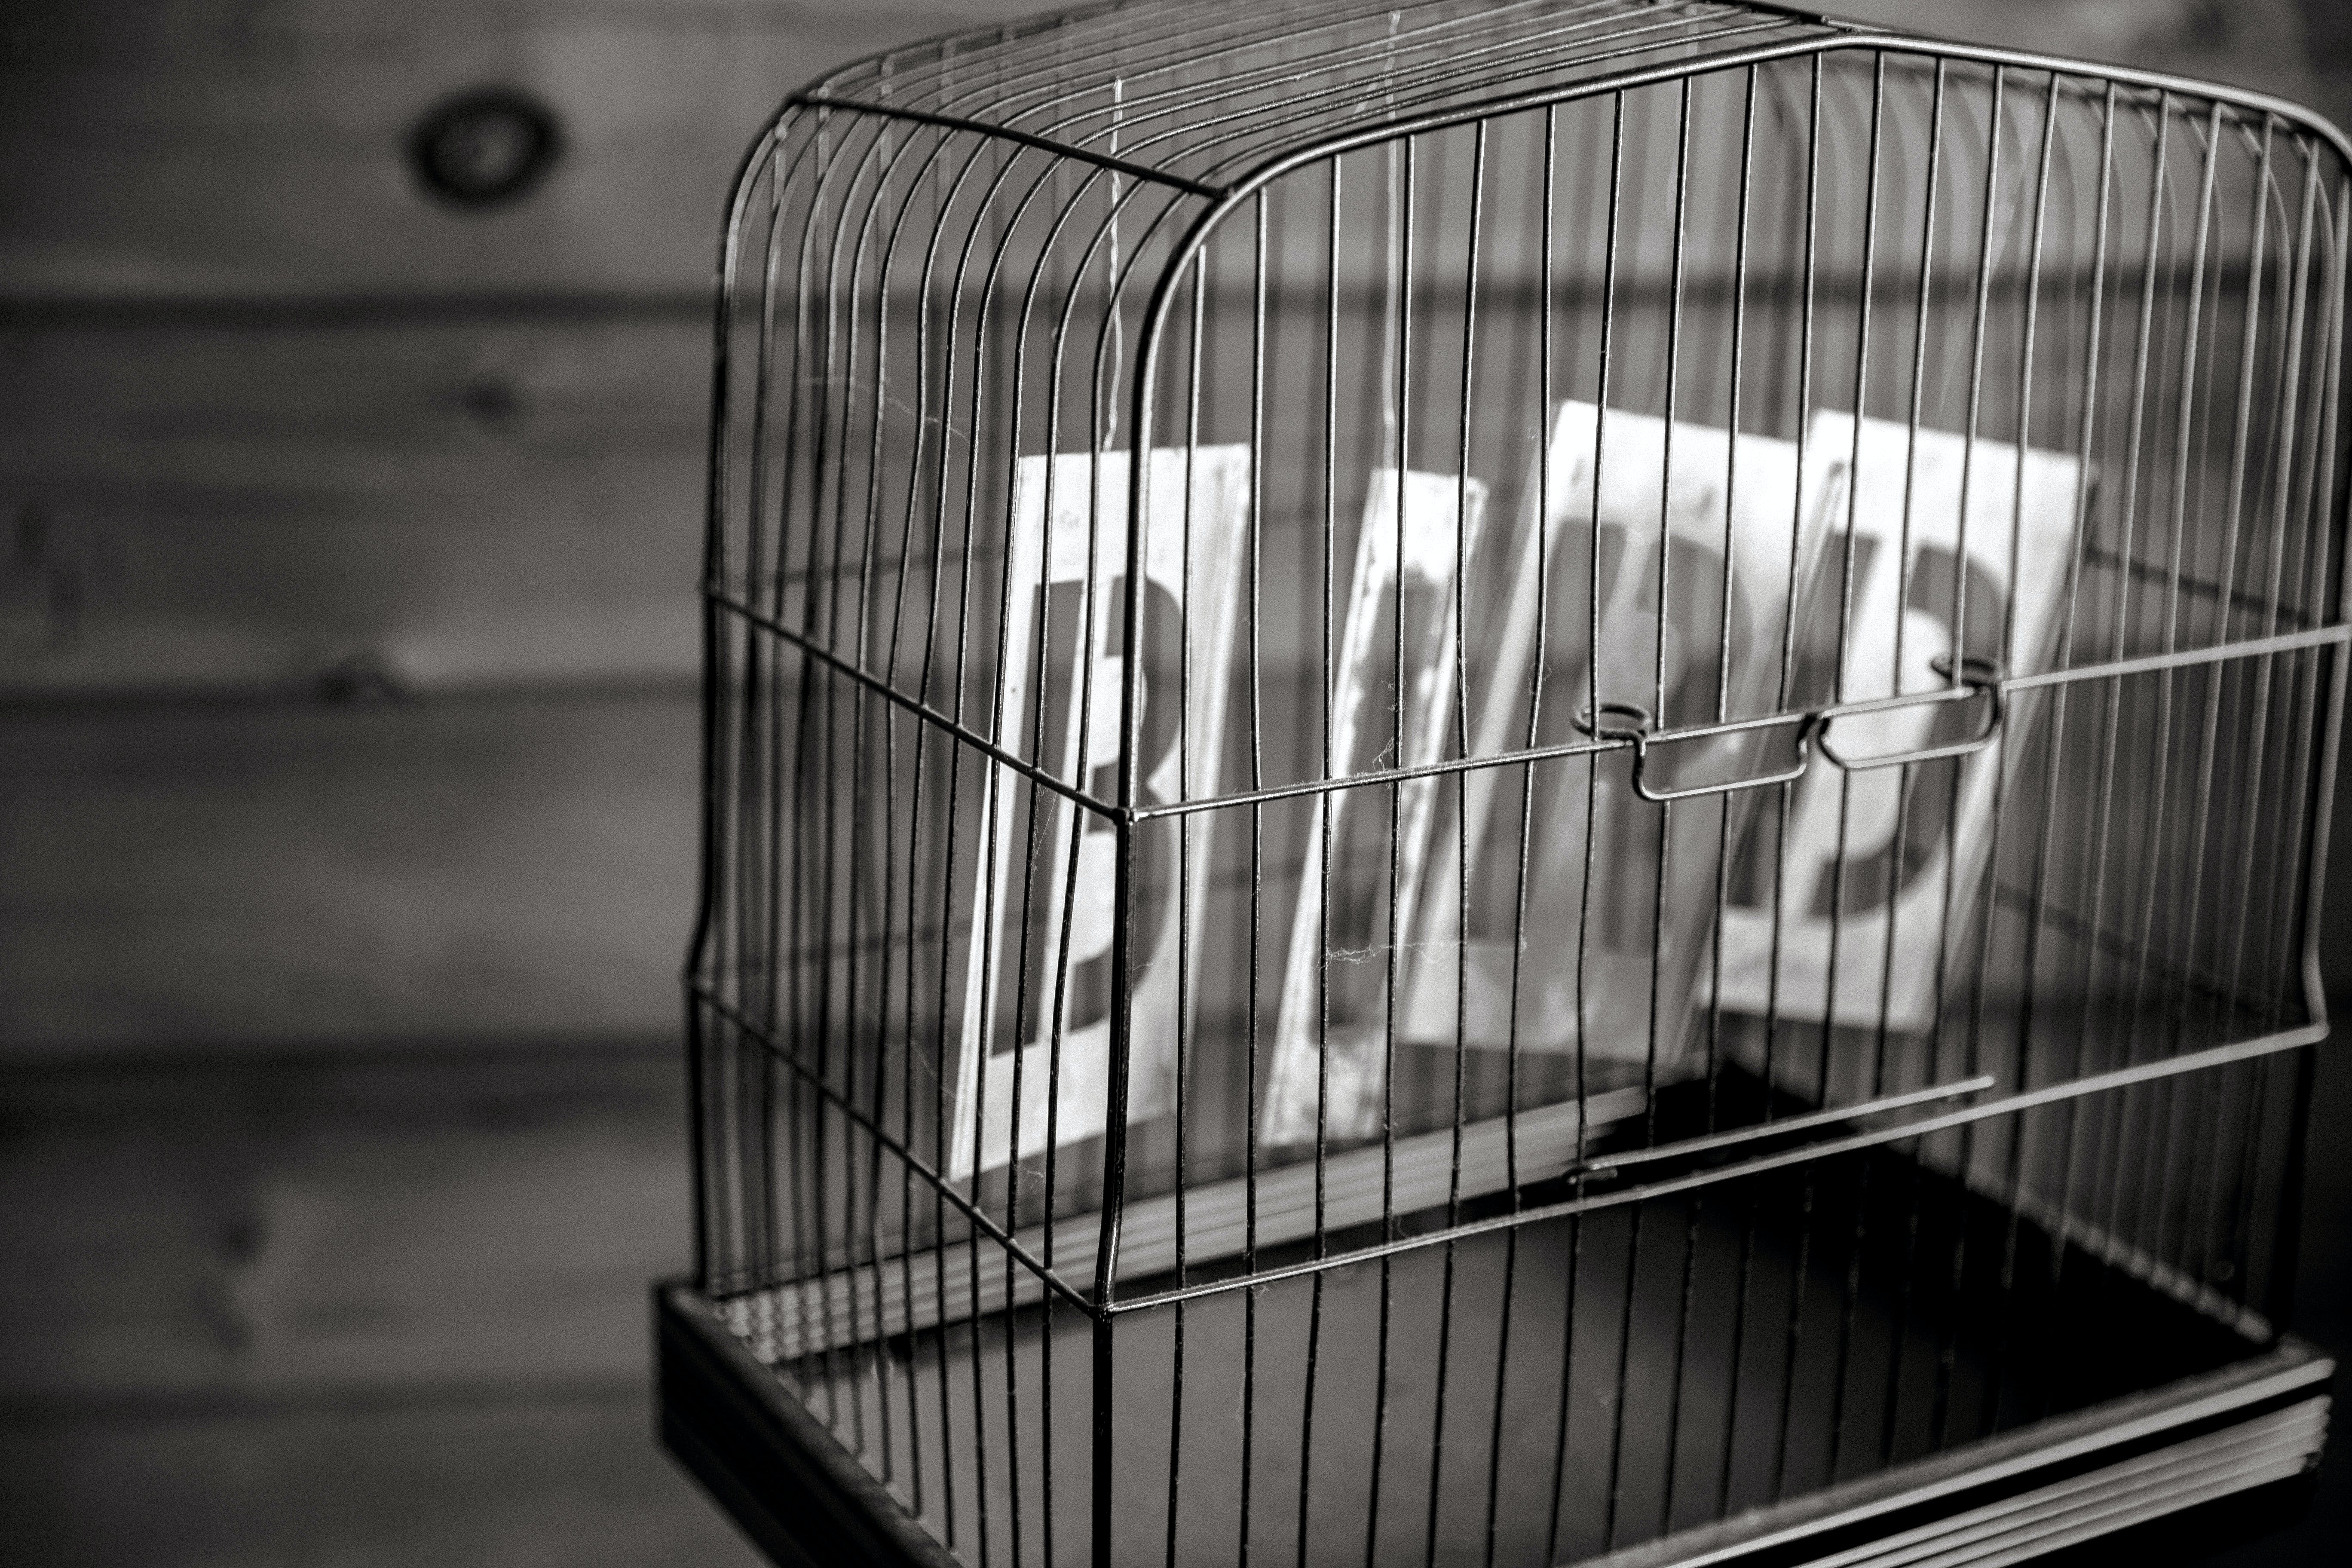 Grayscale Photography of Gray Birdcage Near Wall